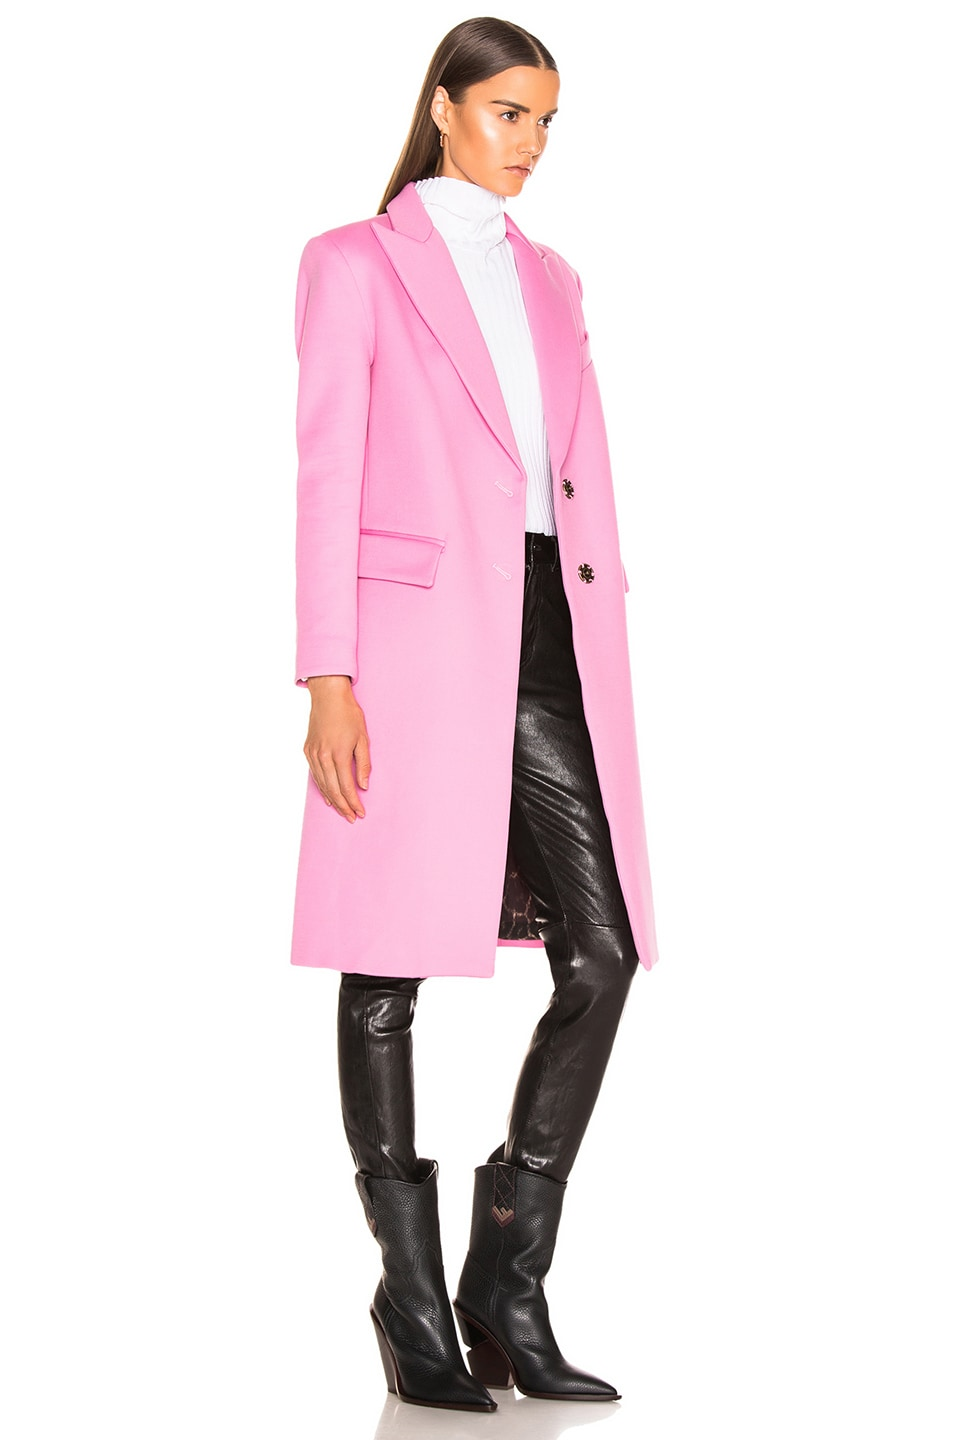 Image 3 of Smythe Peaked Lapel Overcoat in Extra Pink with Leopard Lining